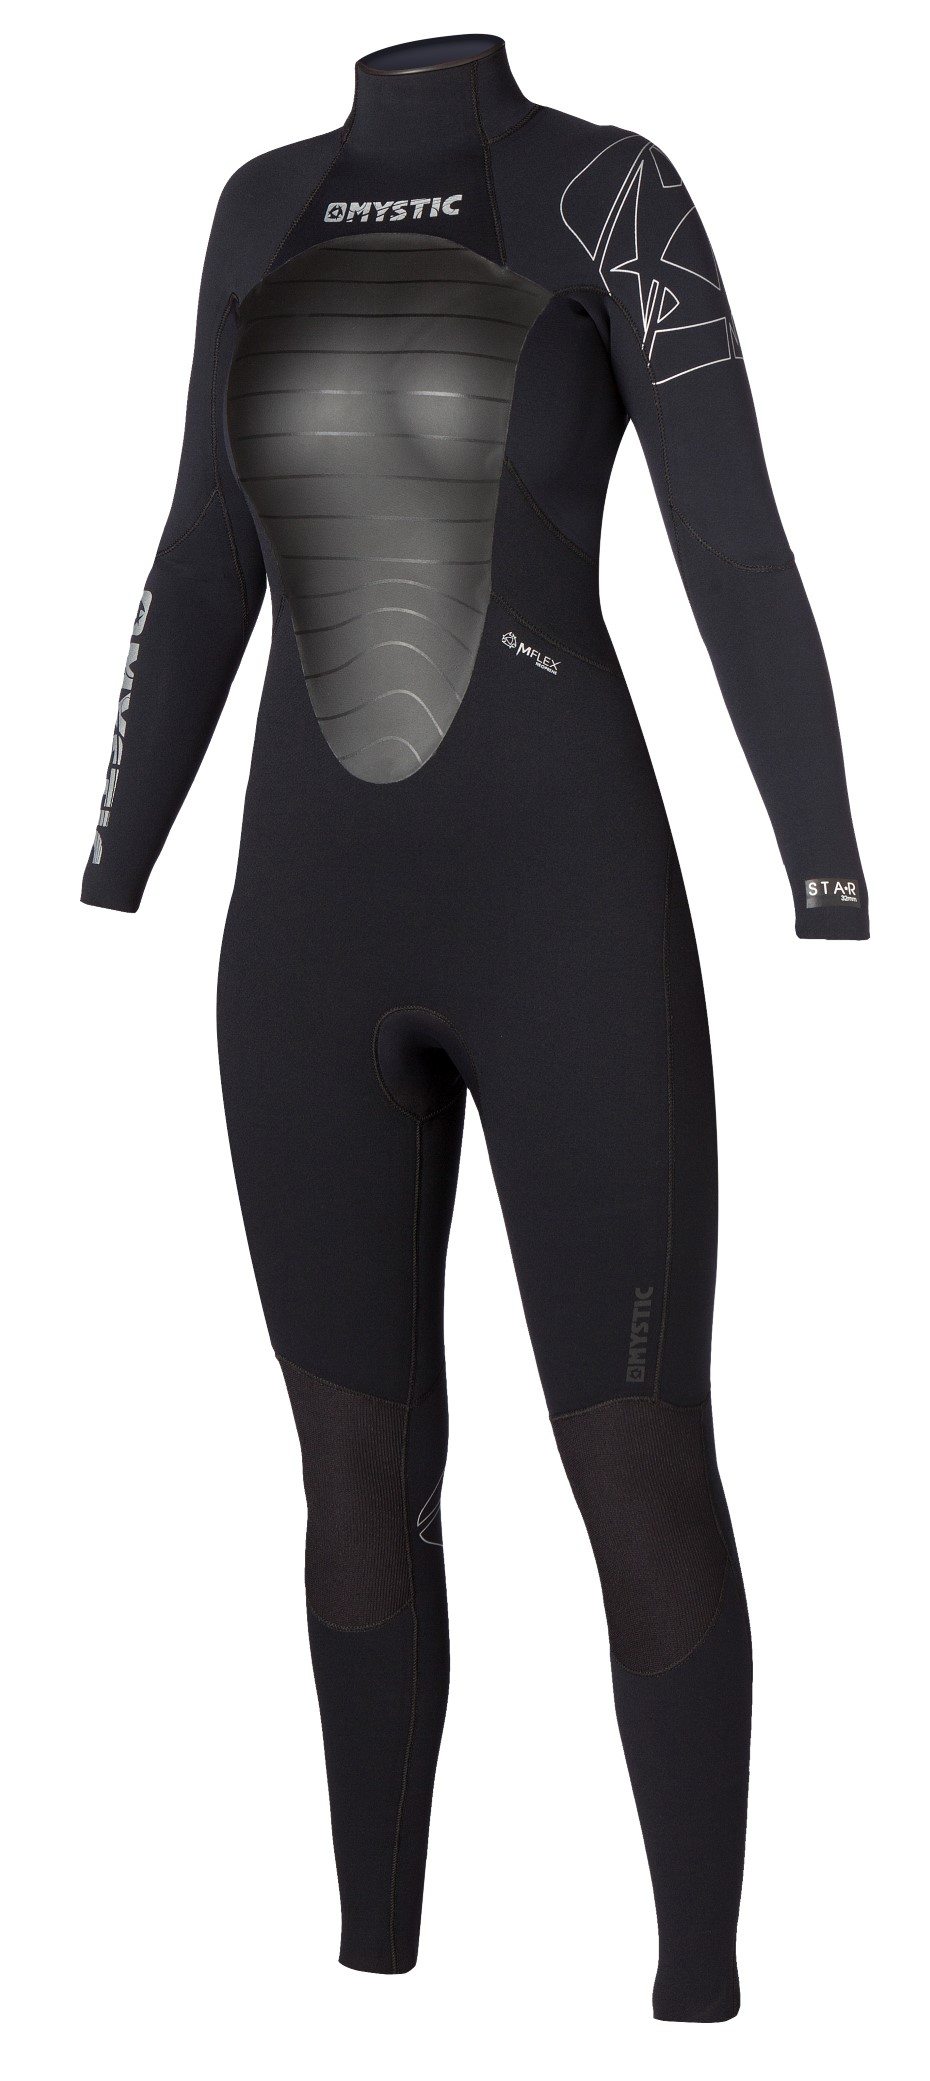 STAR 5/4 D/L FULLSUIT WOMEN - BLACK MYSTIC 2016